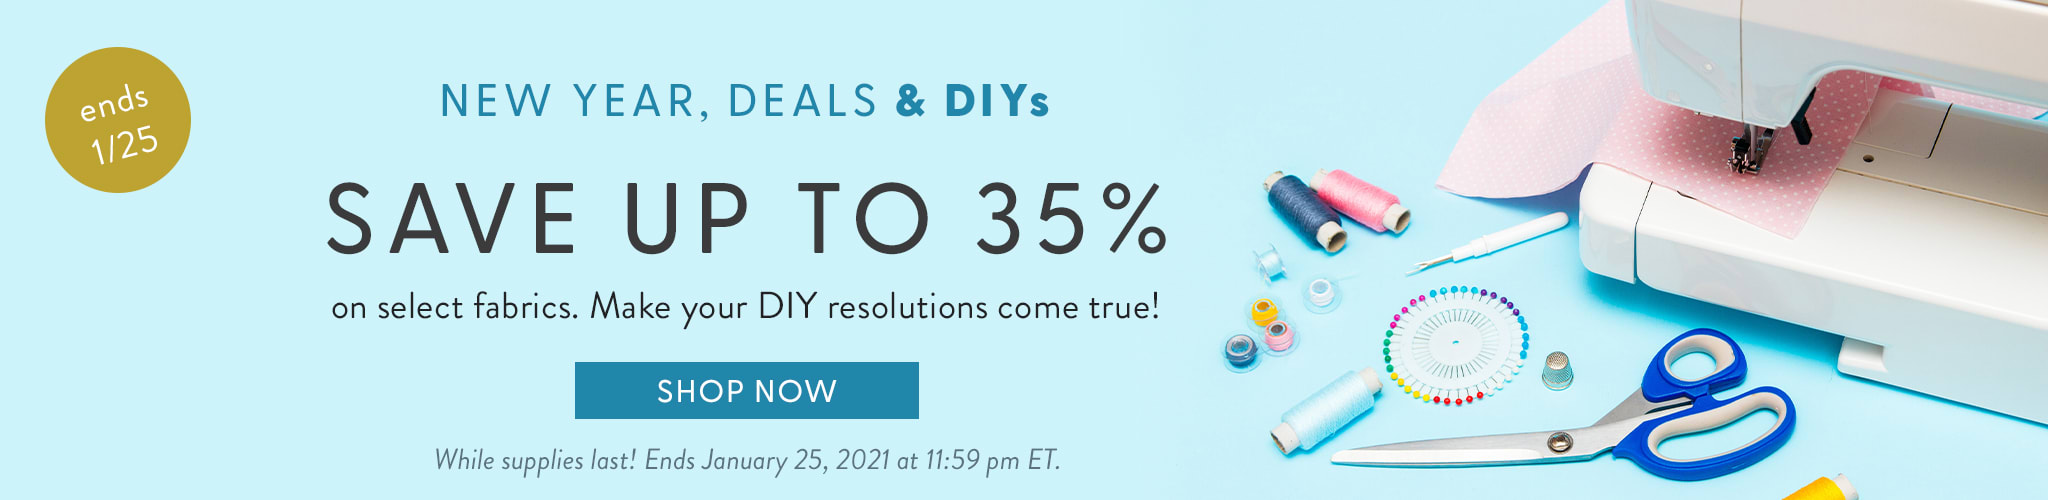 New Year, Deals & DIYs. Save up to 35% on select fabrics. Make your DIY resolution come true!